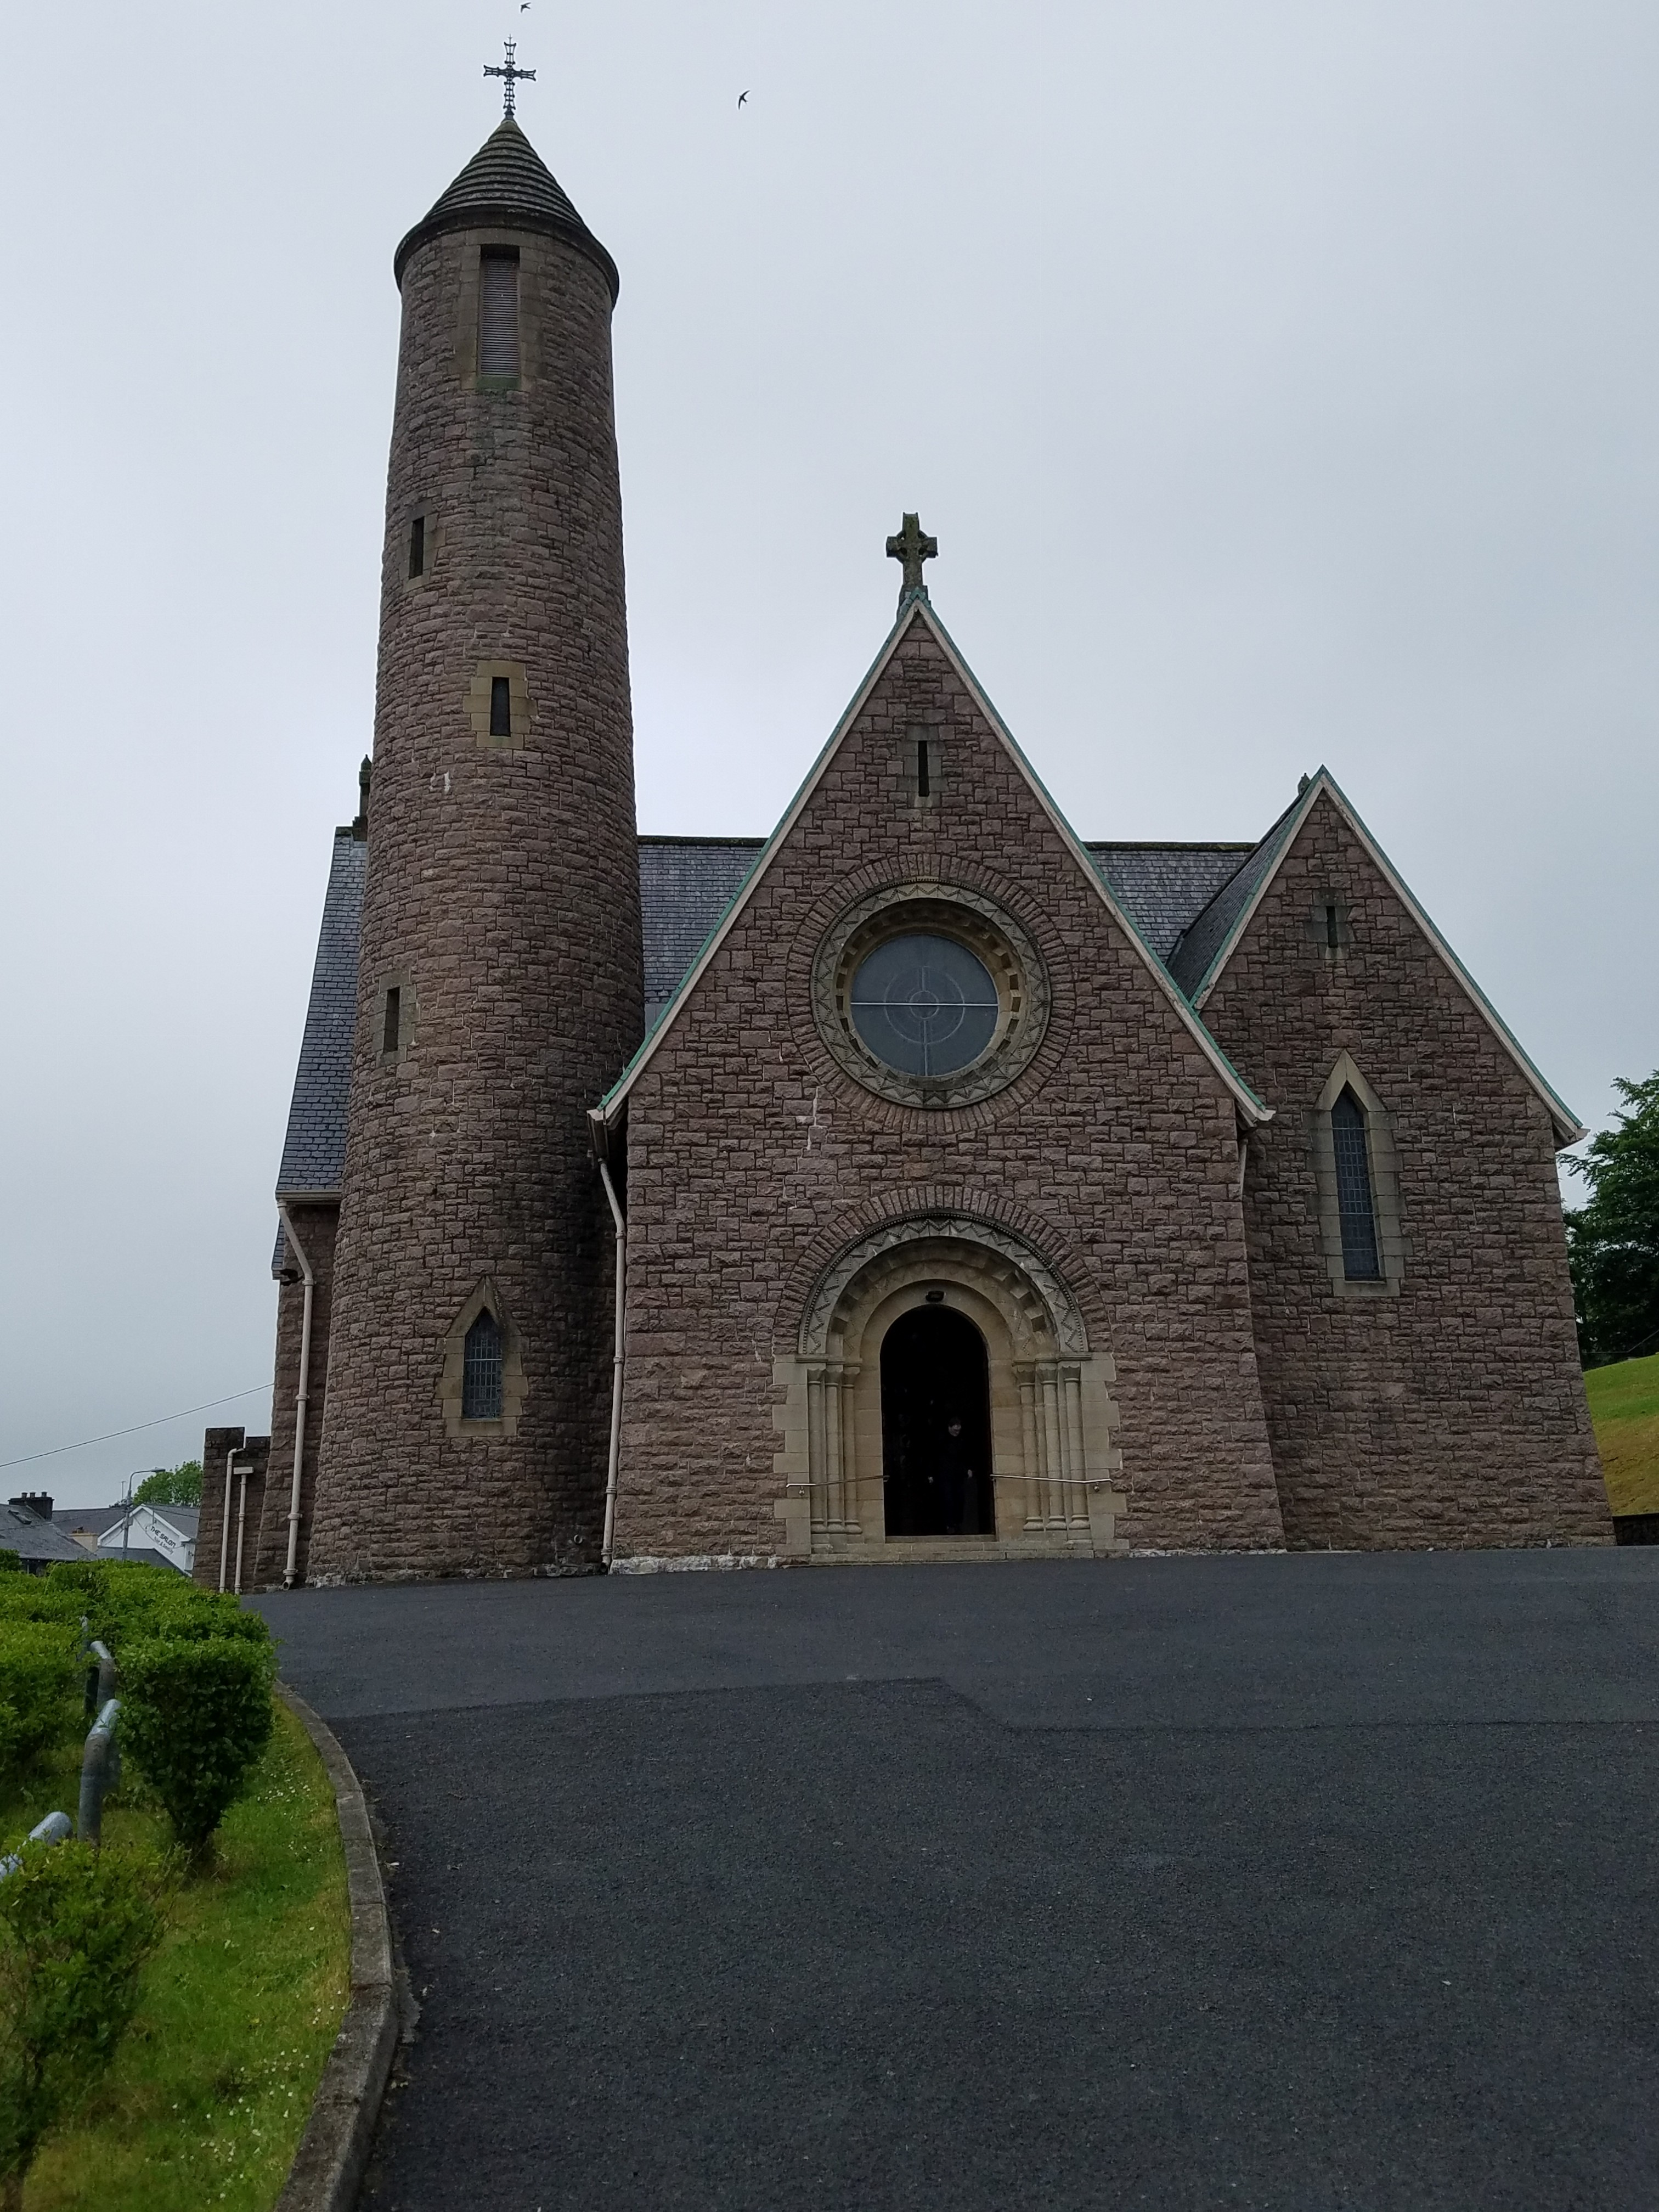 The Church of Ireland (Anglican) in Donegal